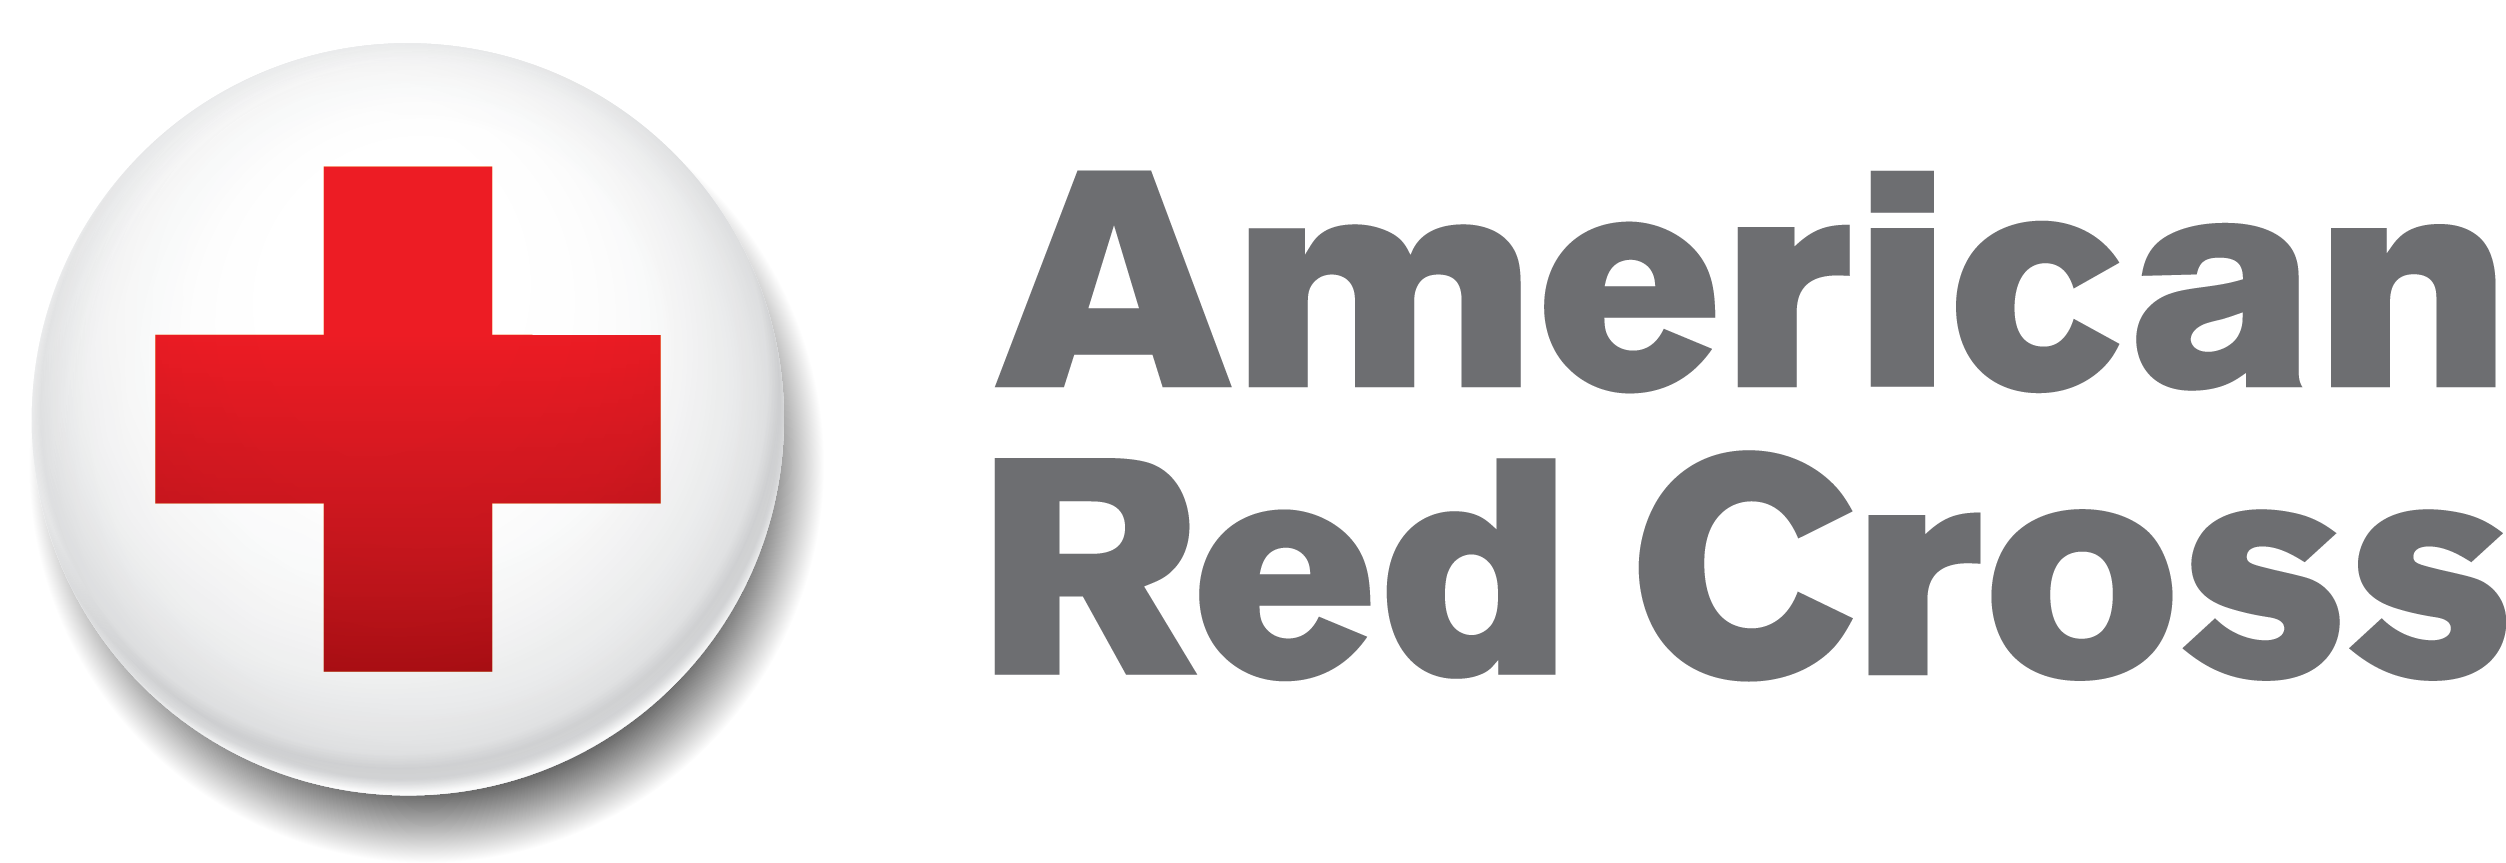 Red Cross Logo [ARC] PNG Free Downloads, Logo Brand Emblems